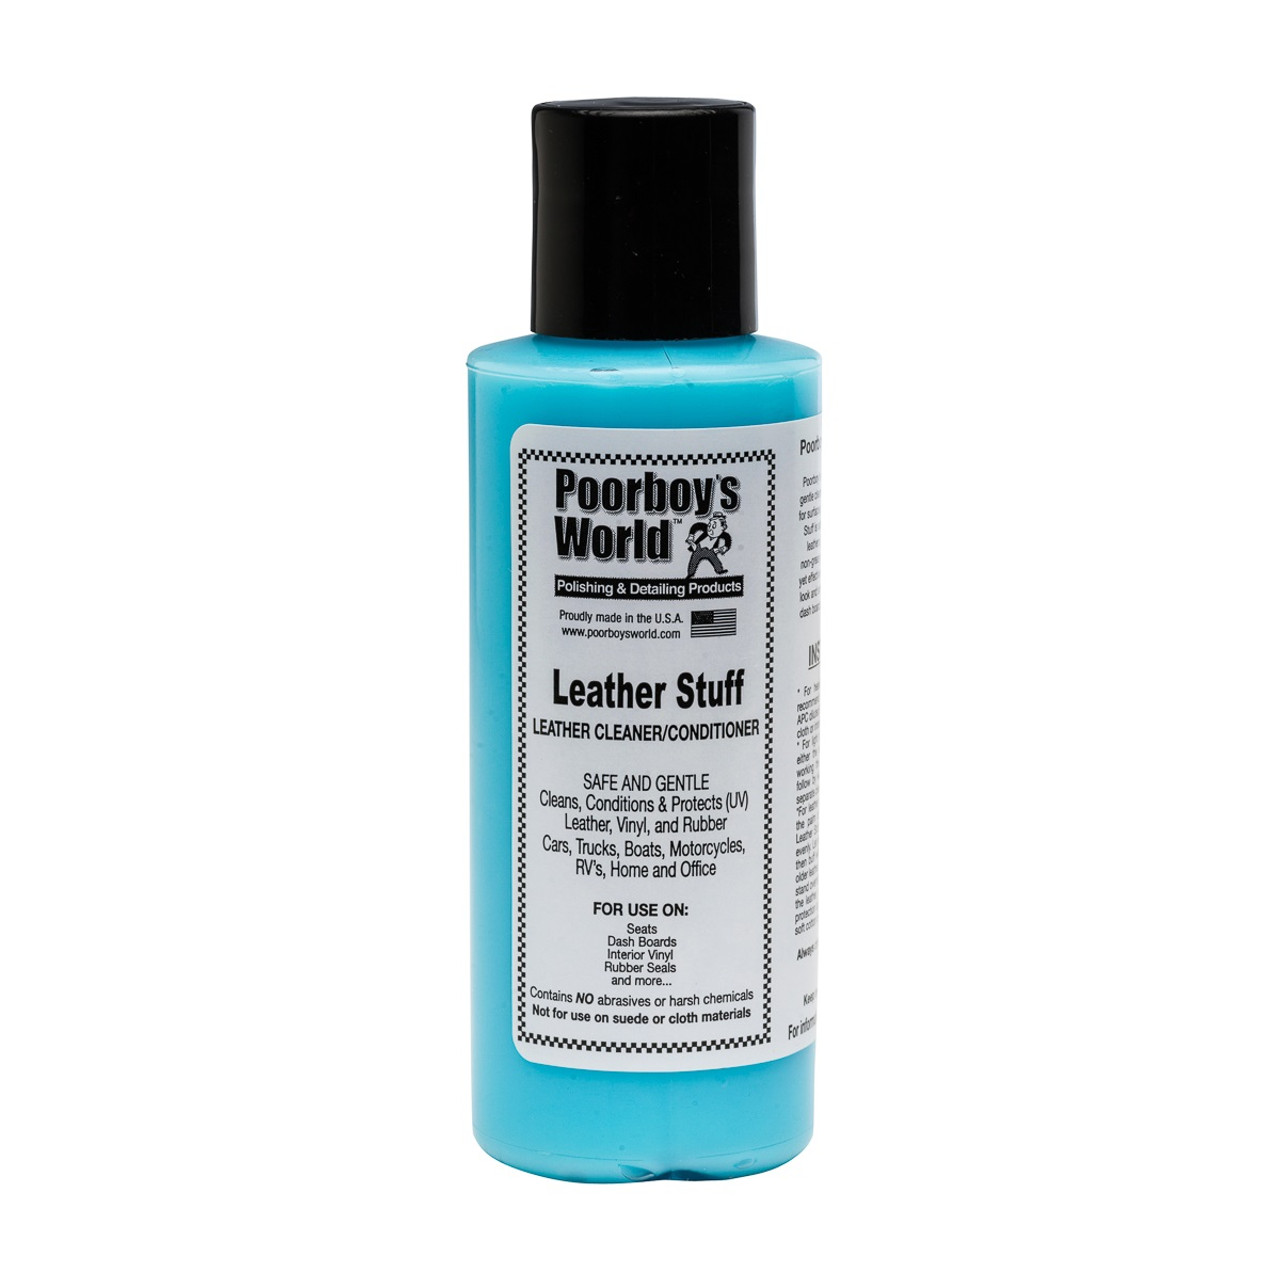 Poorboy's World Leather Stuff 4oz